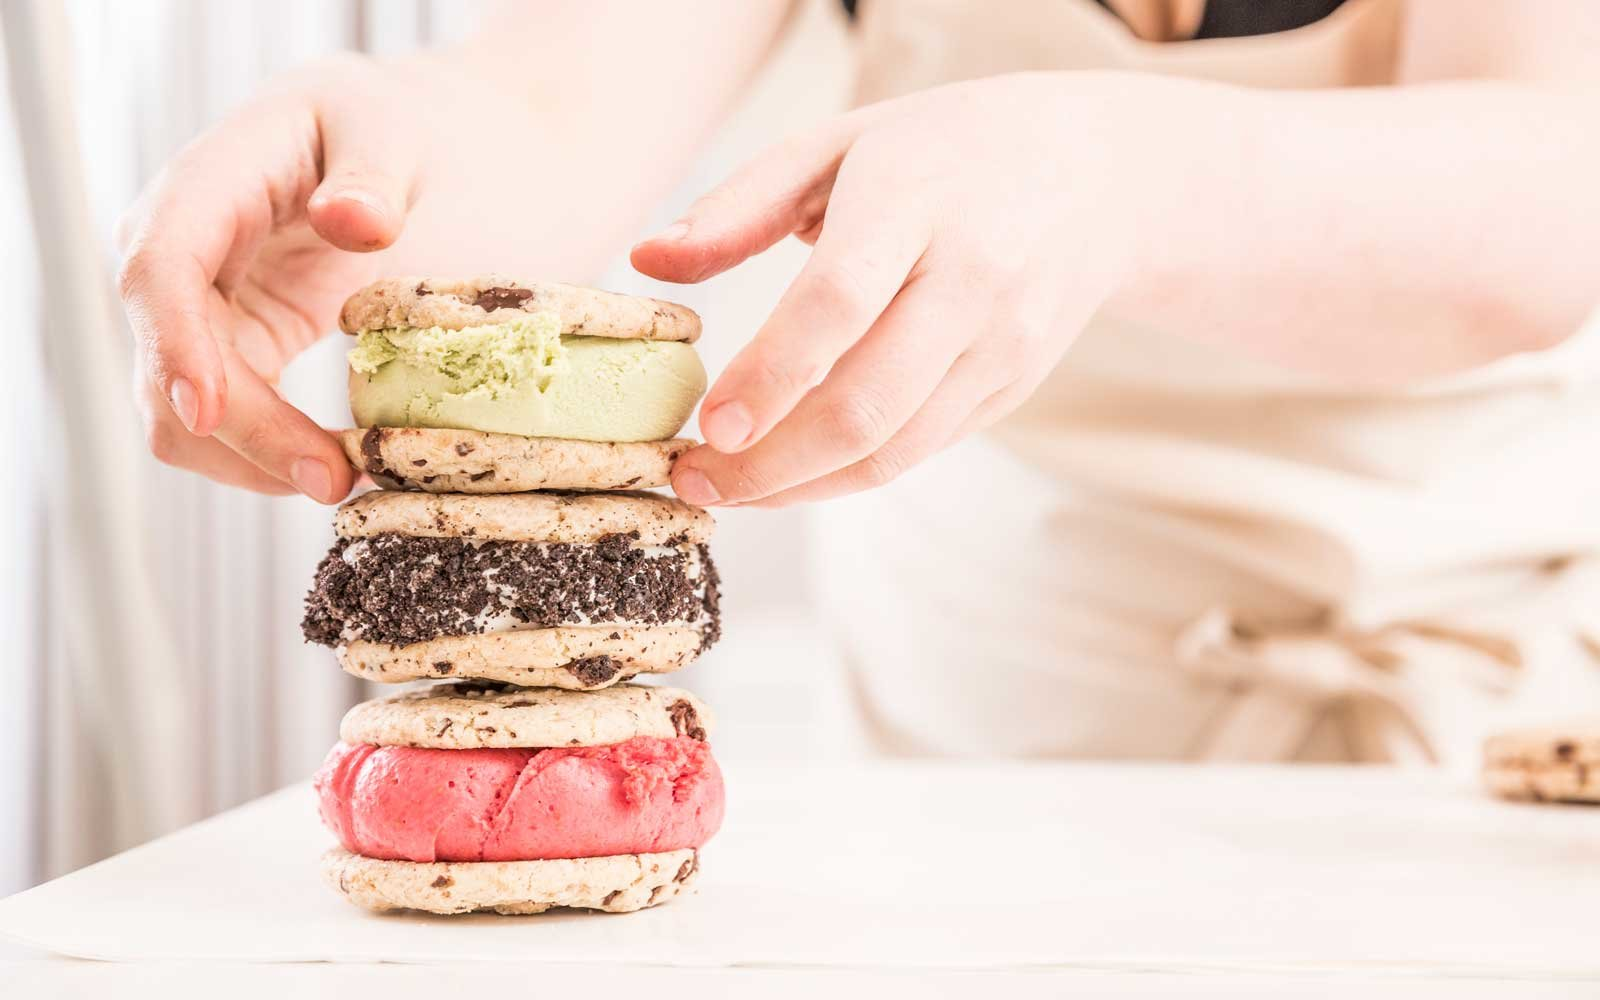 Veganista Vegan Ice Cream Sandwiches in Vienna, Austria